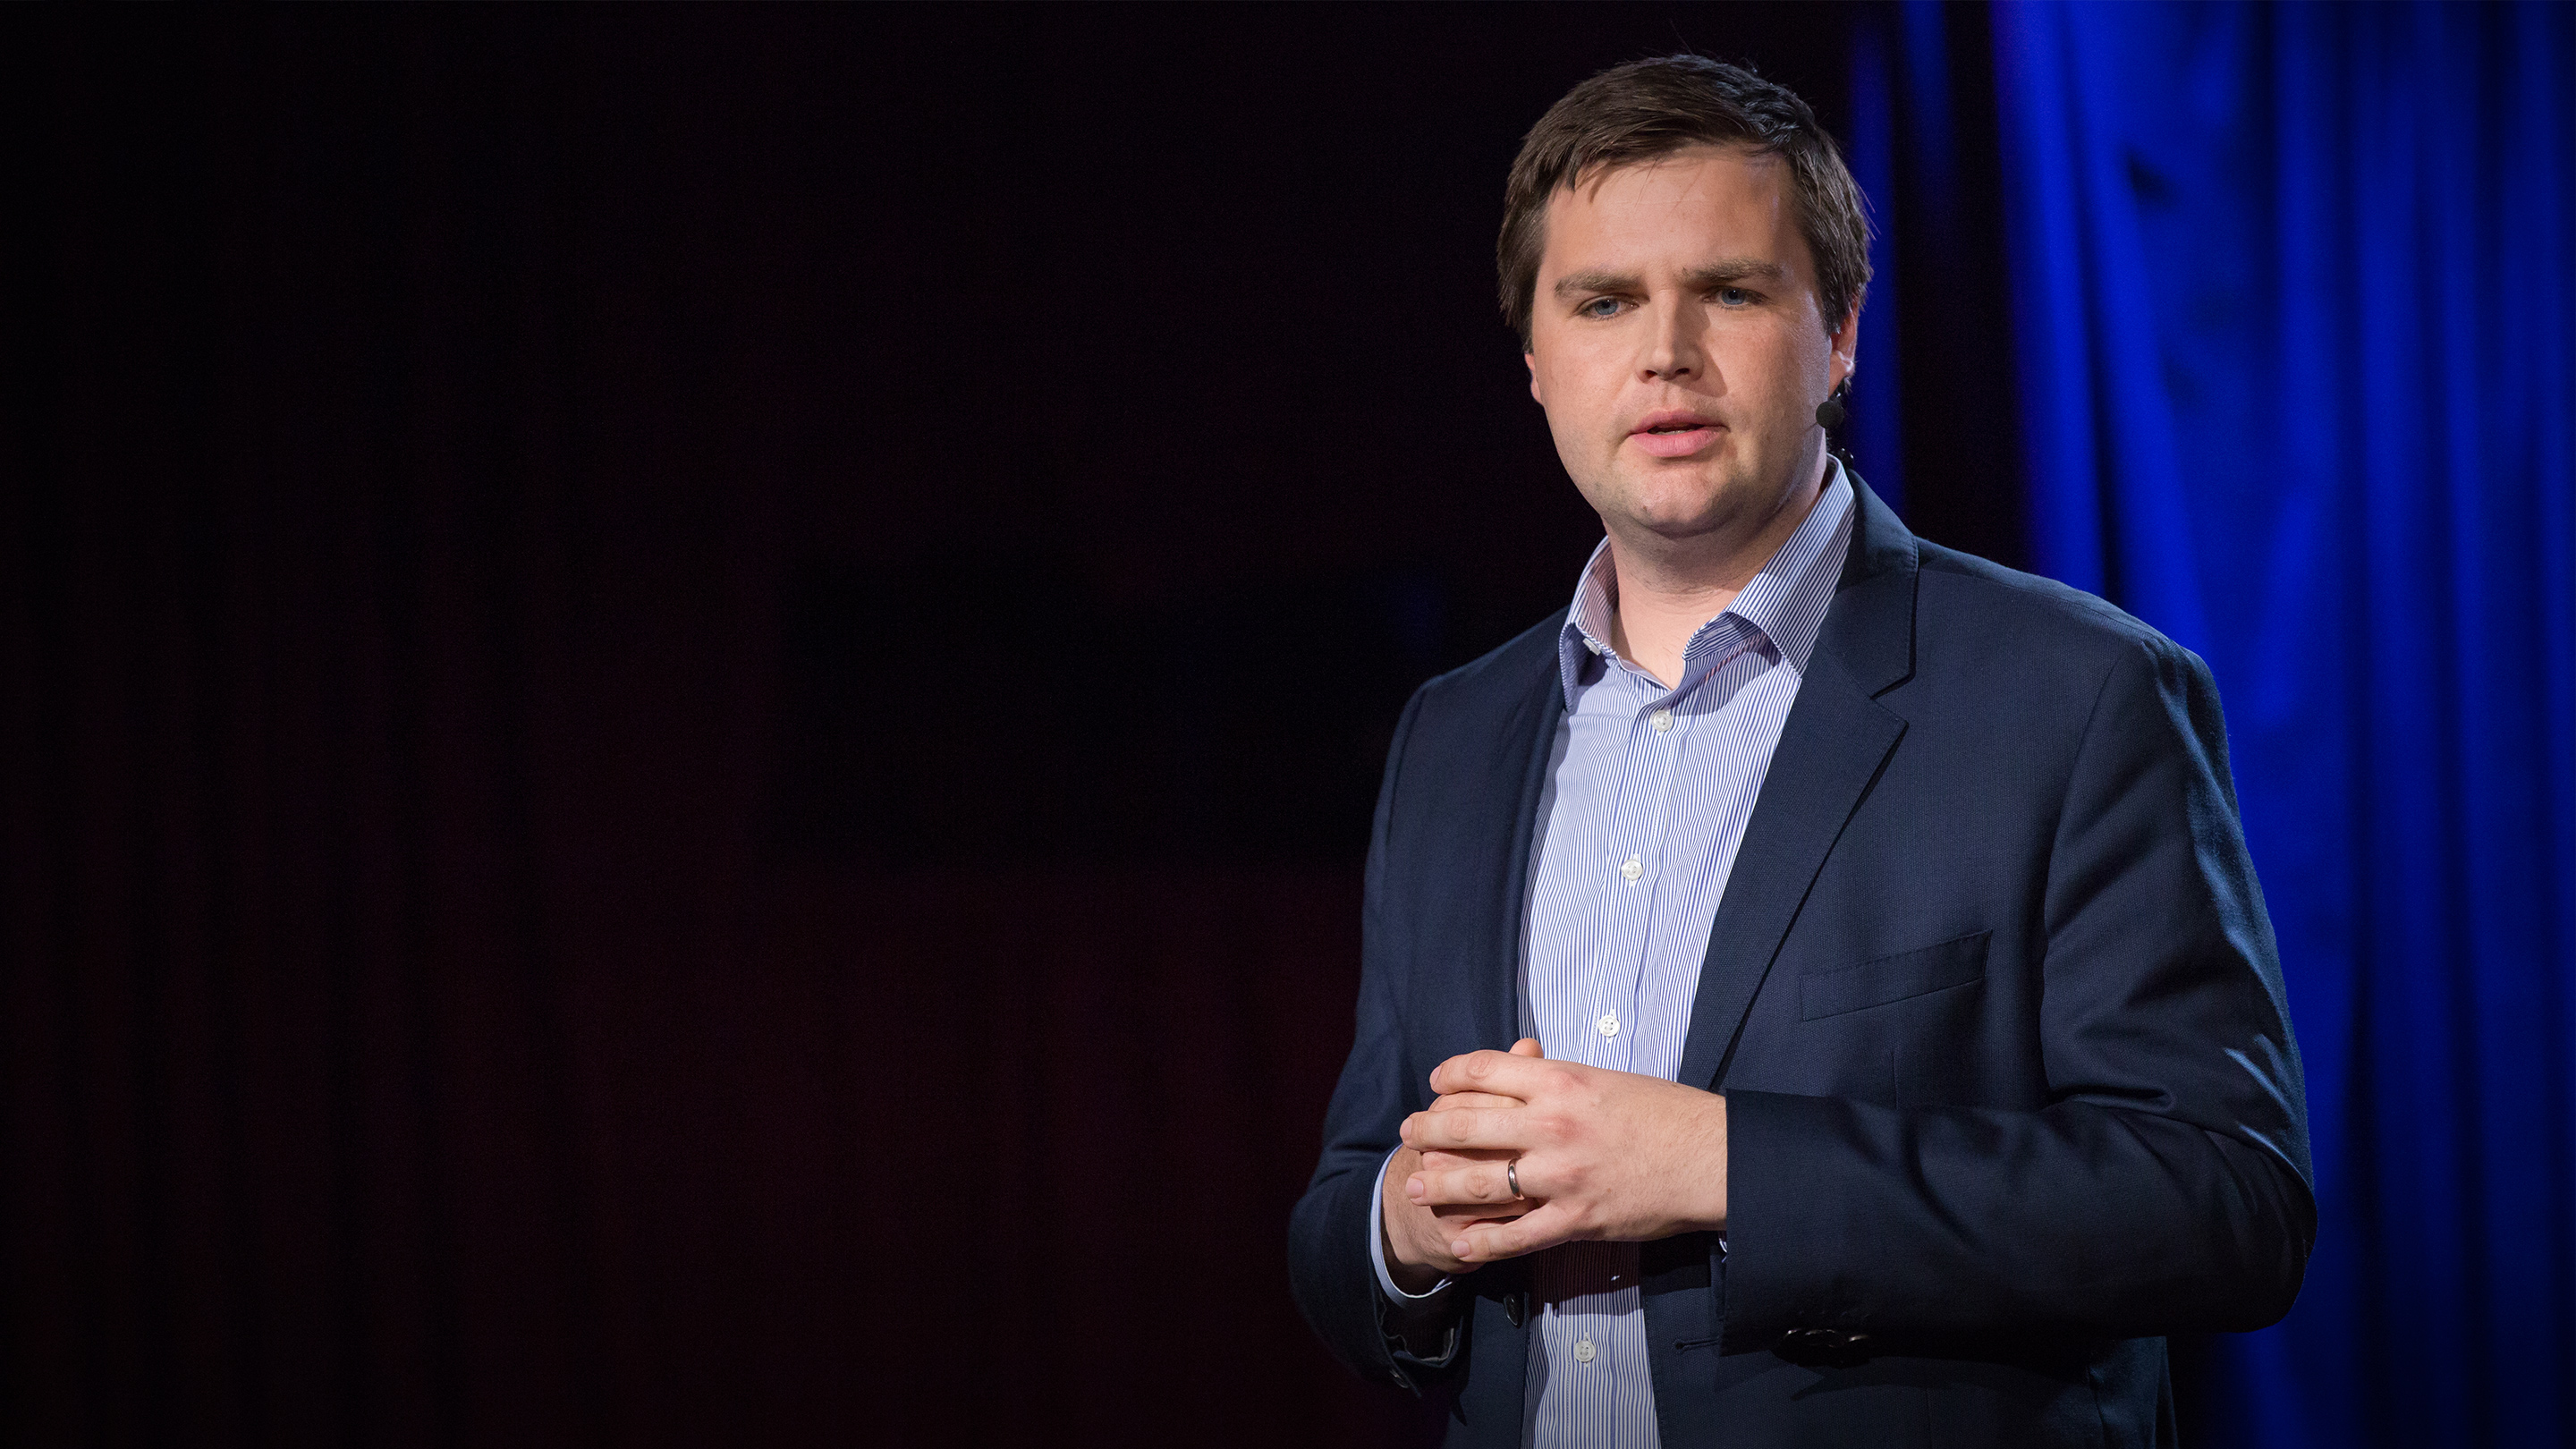 J.D. Vance: The struggles of America's forgotten working class thumbnail